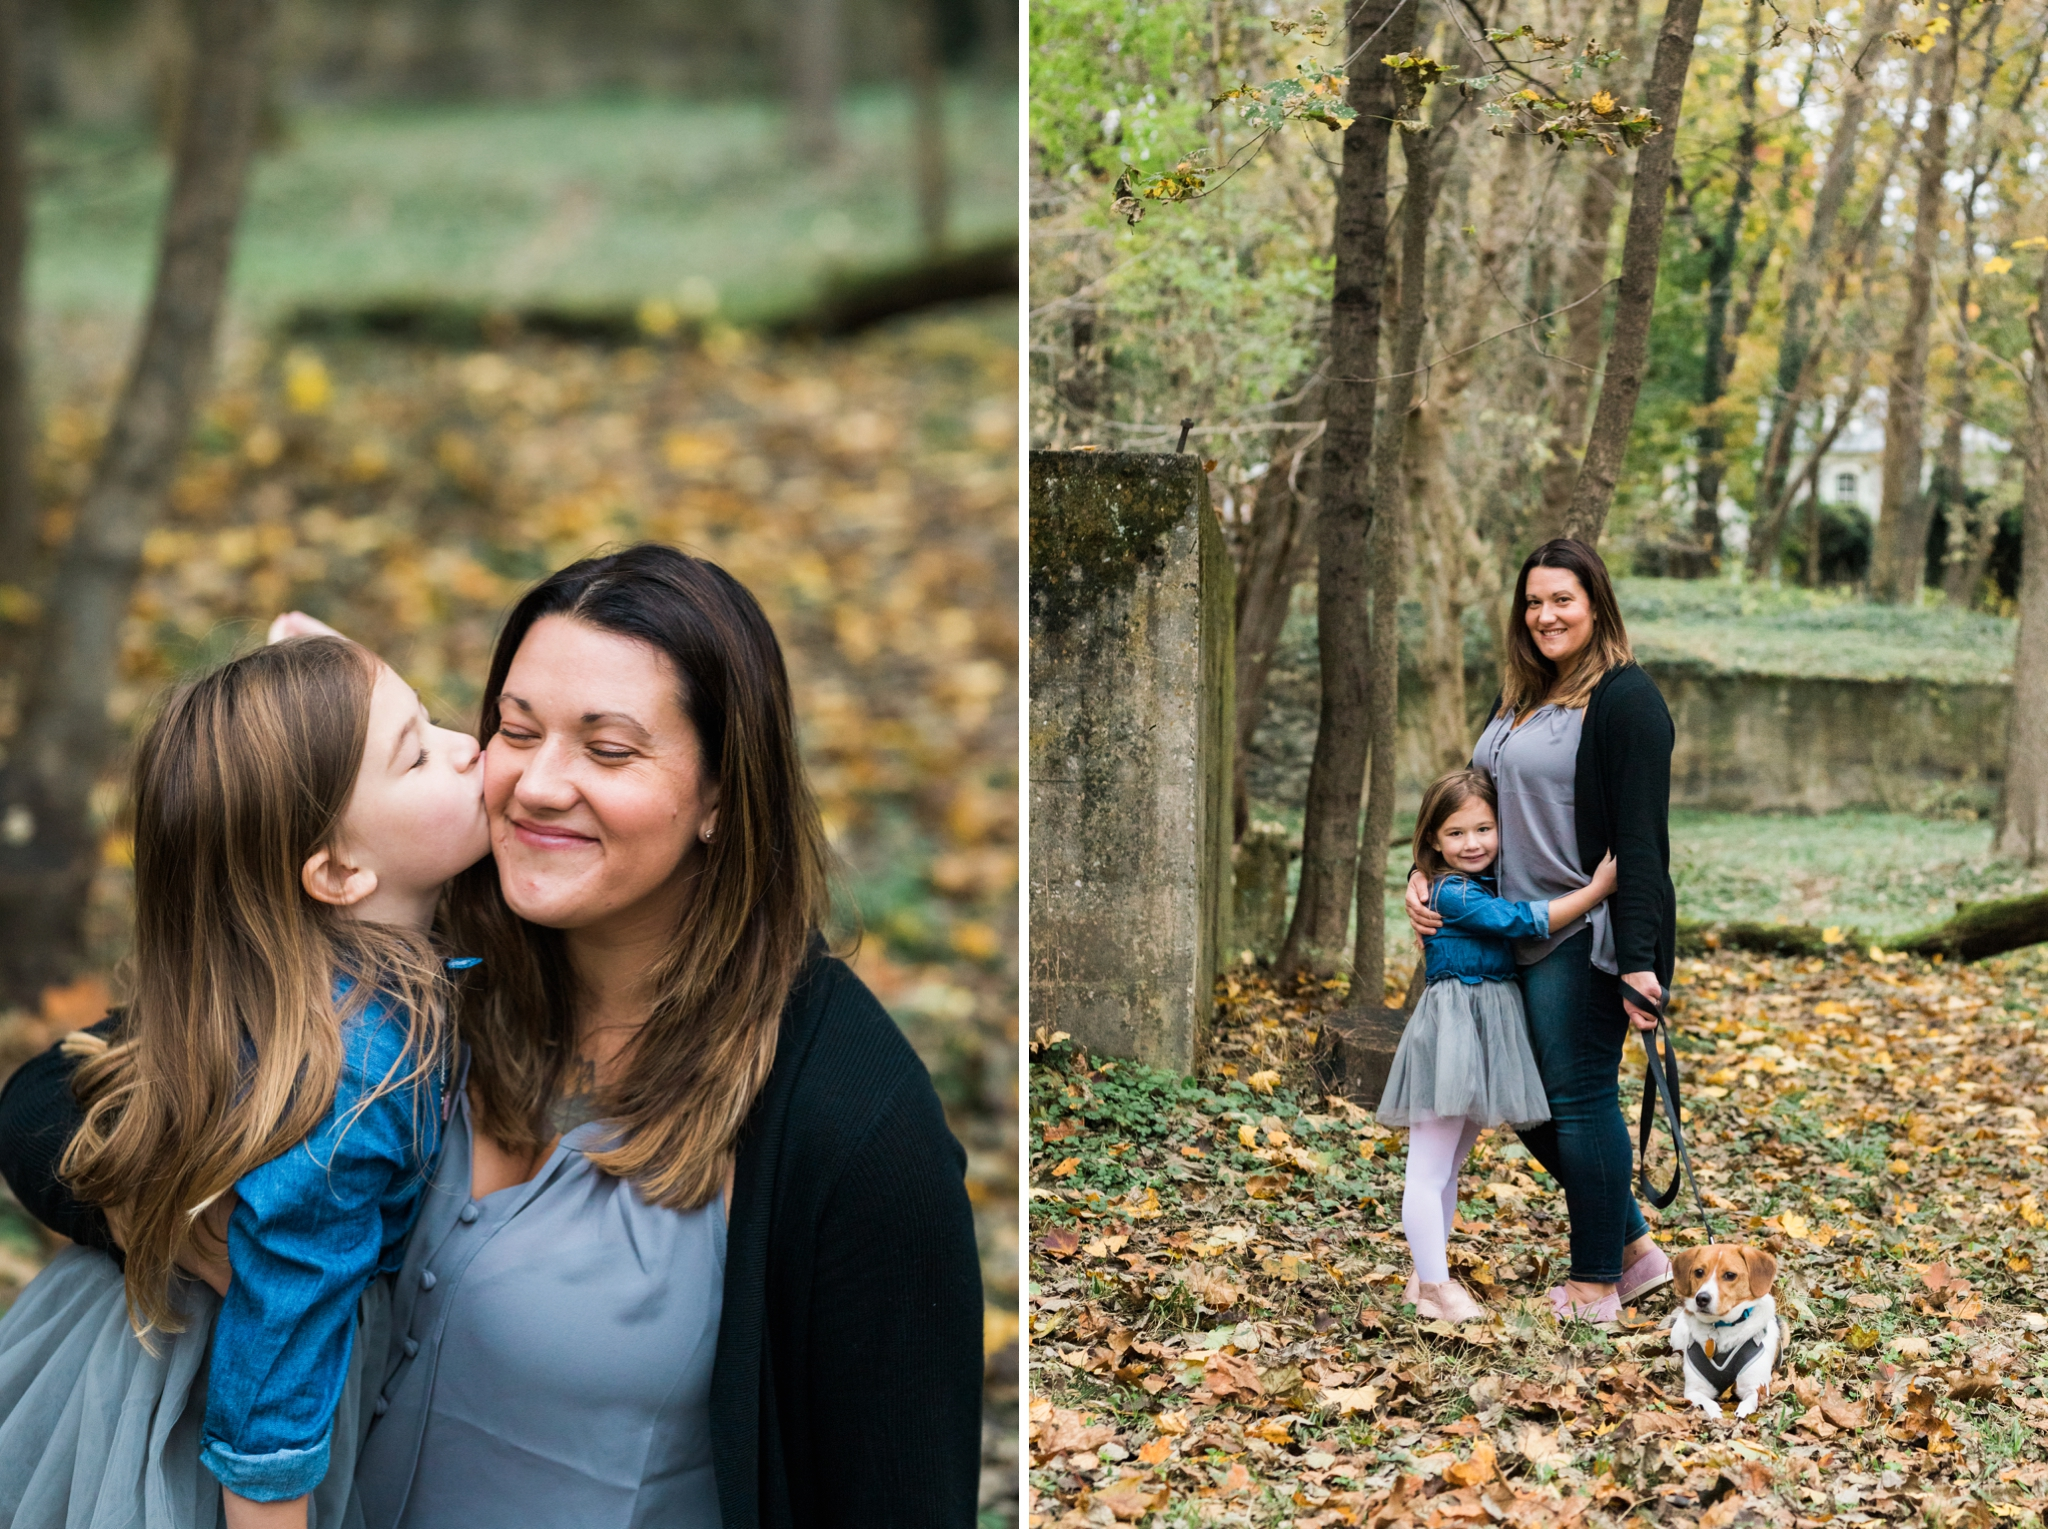 Emily Grace Photography, Lancaster PA Lifestyle Photographer, Marietta PA Photos, Fall Family Portraits with Dog